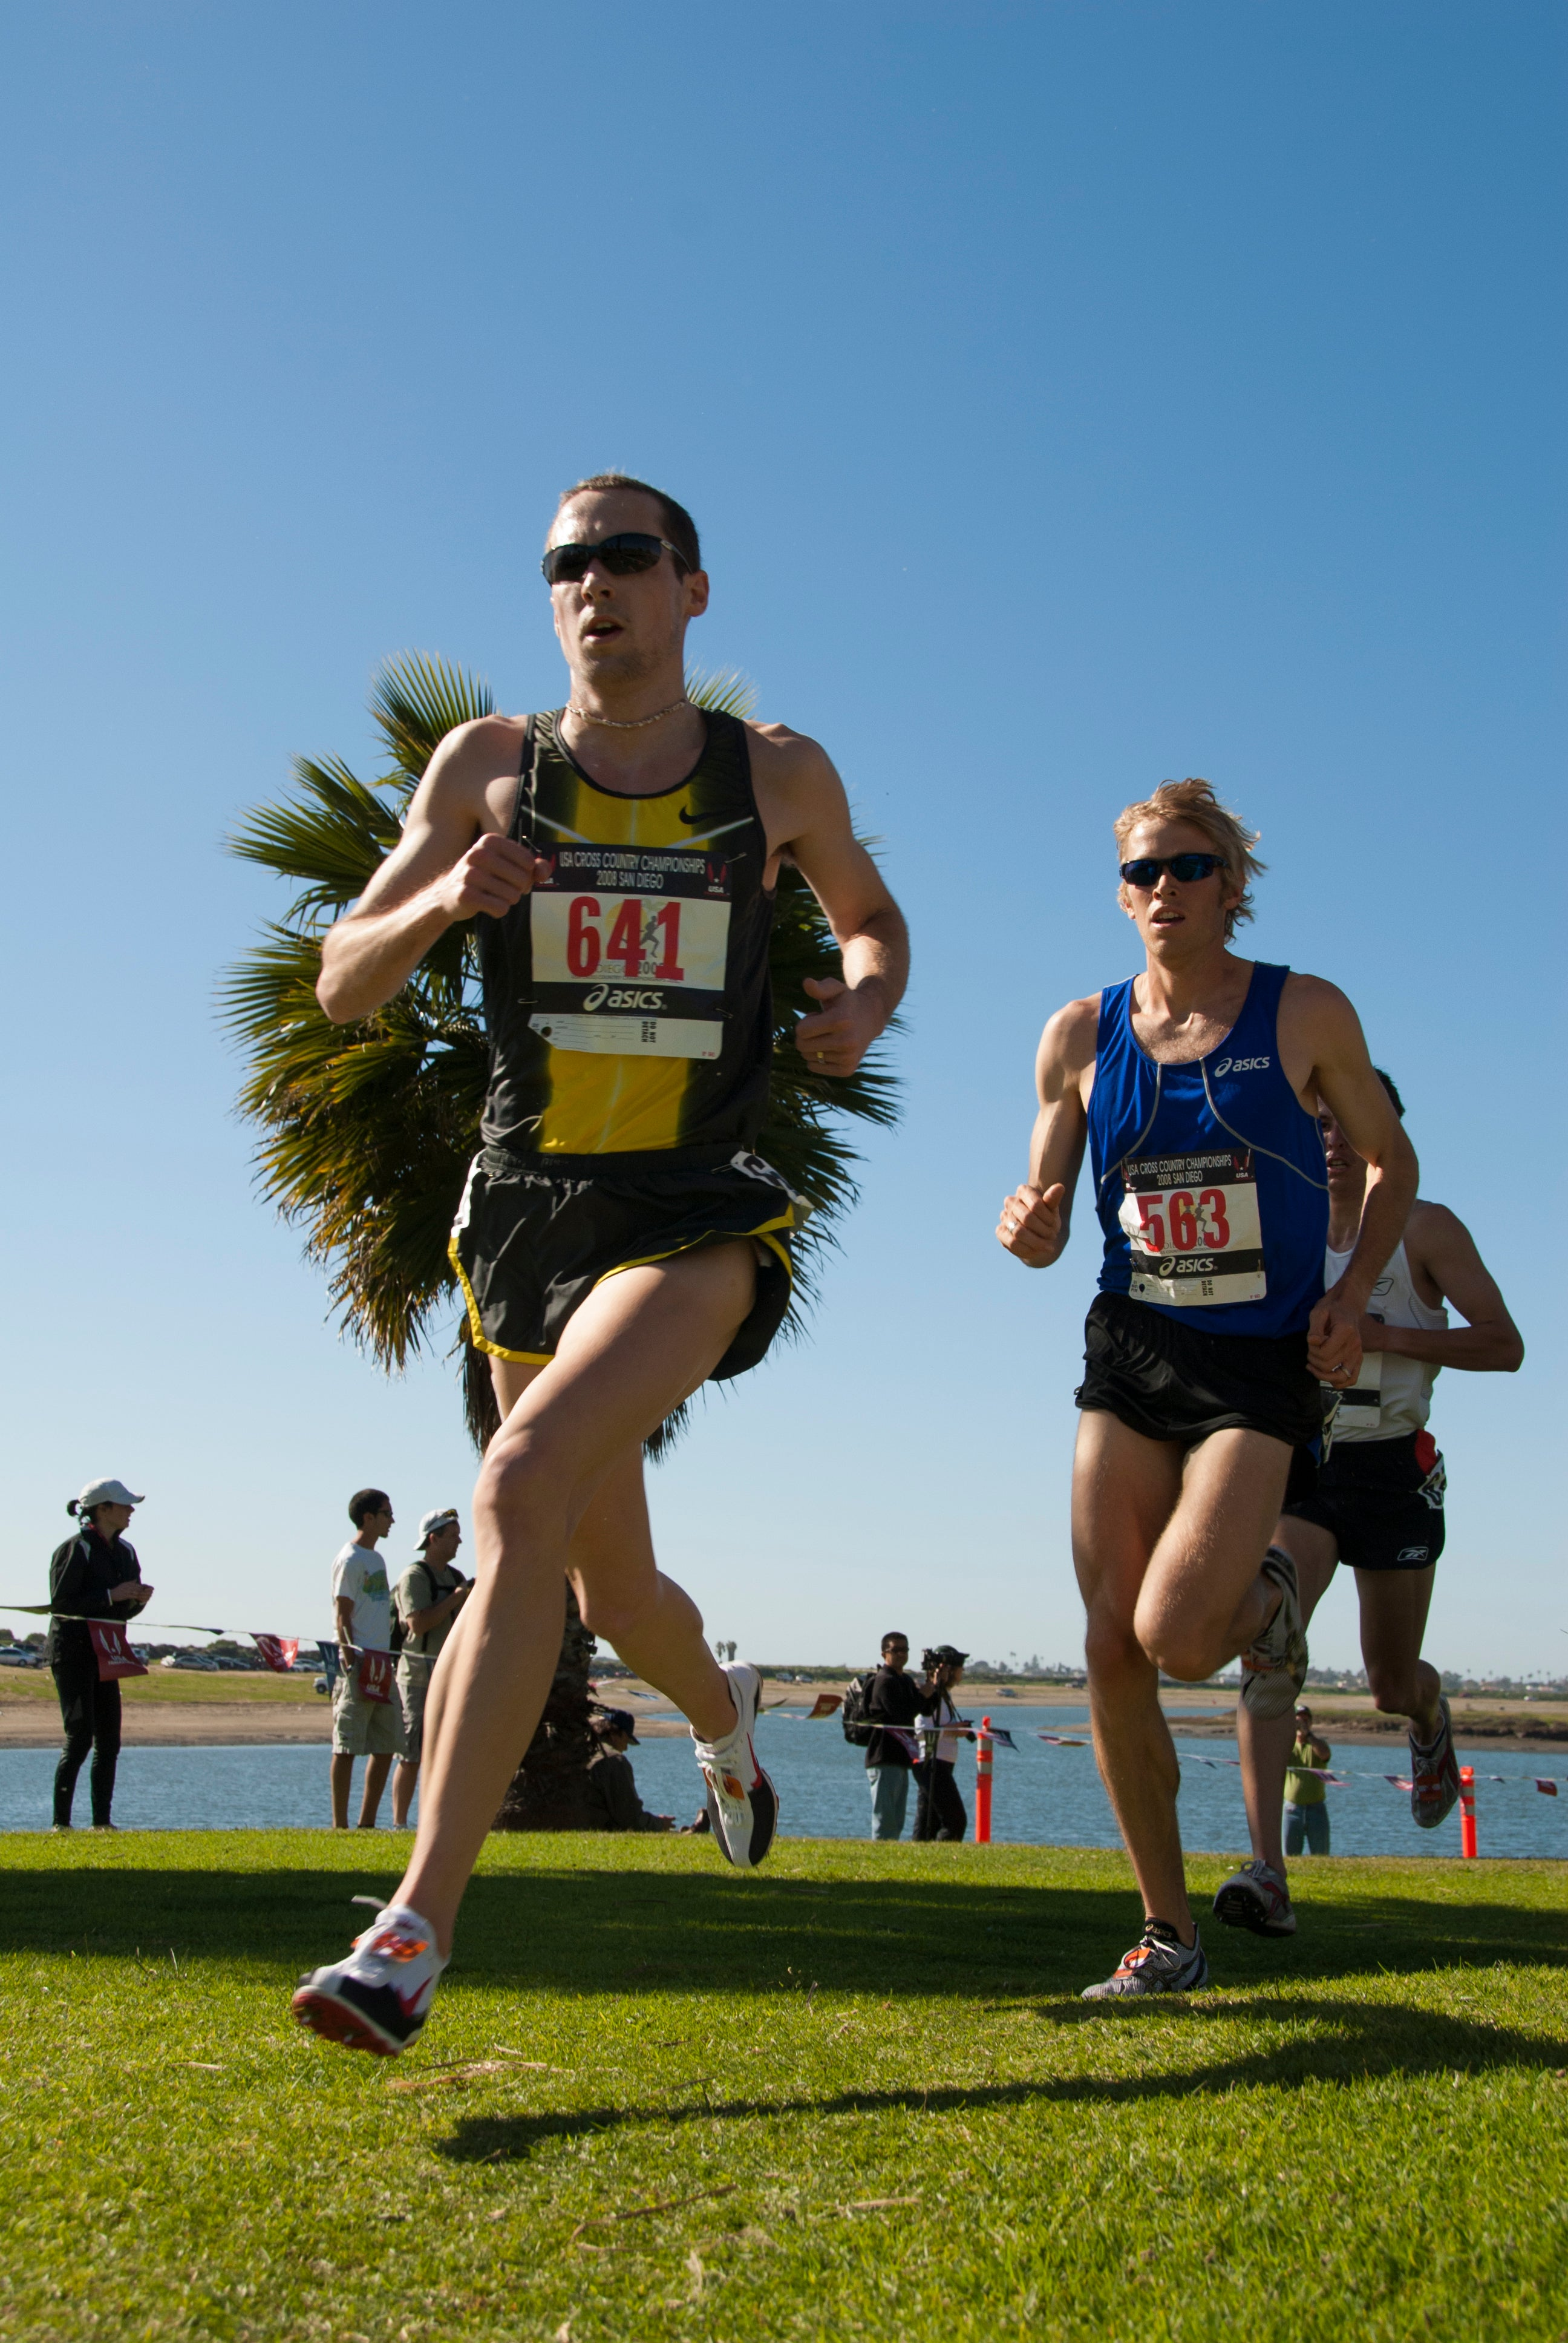 Dathan Ritzenhein leads Ryan Hall en route to victory in the 2008 USATF Cross Contry Championships in San Diego